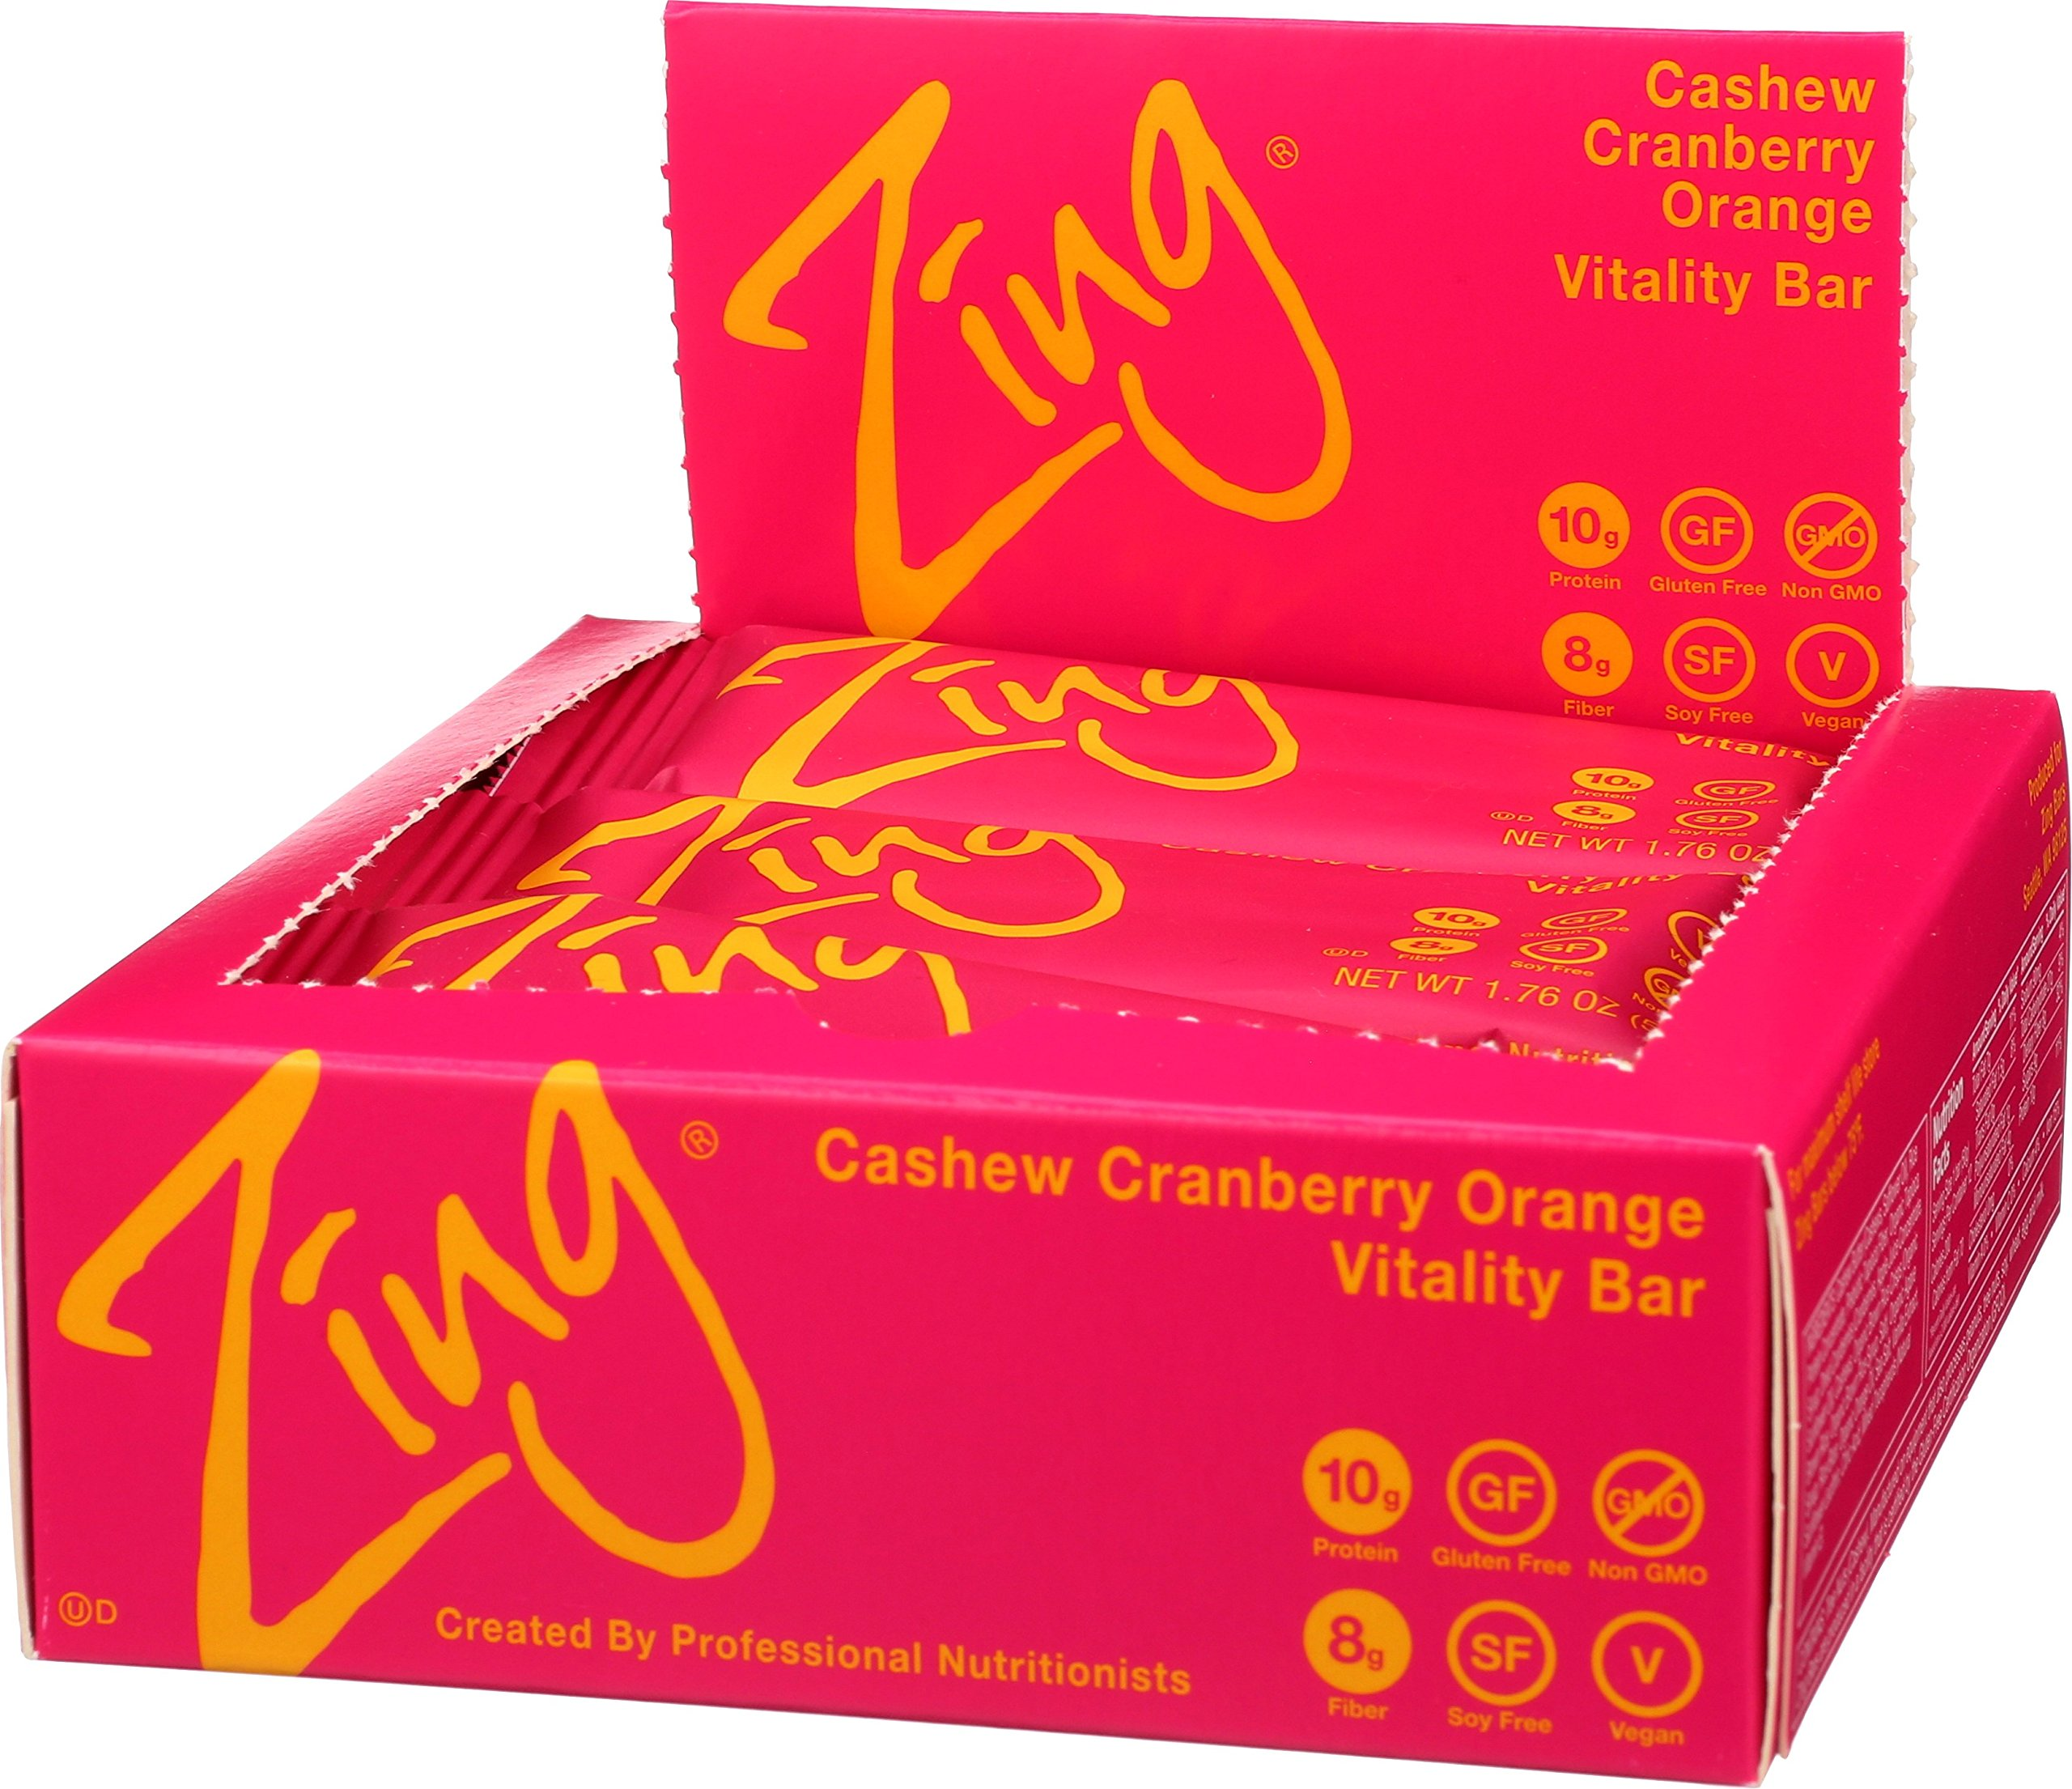 Zing Nutrition Bar, Cashew Cranberry Orange, (Pack of 12), Non-GMO Snack Bar for Optimum Energy, Gluten & Soy Free, Plant-Based Protein by Zing Bars (Image #5)